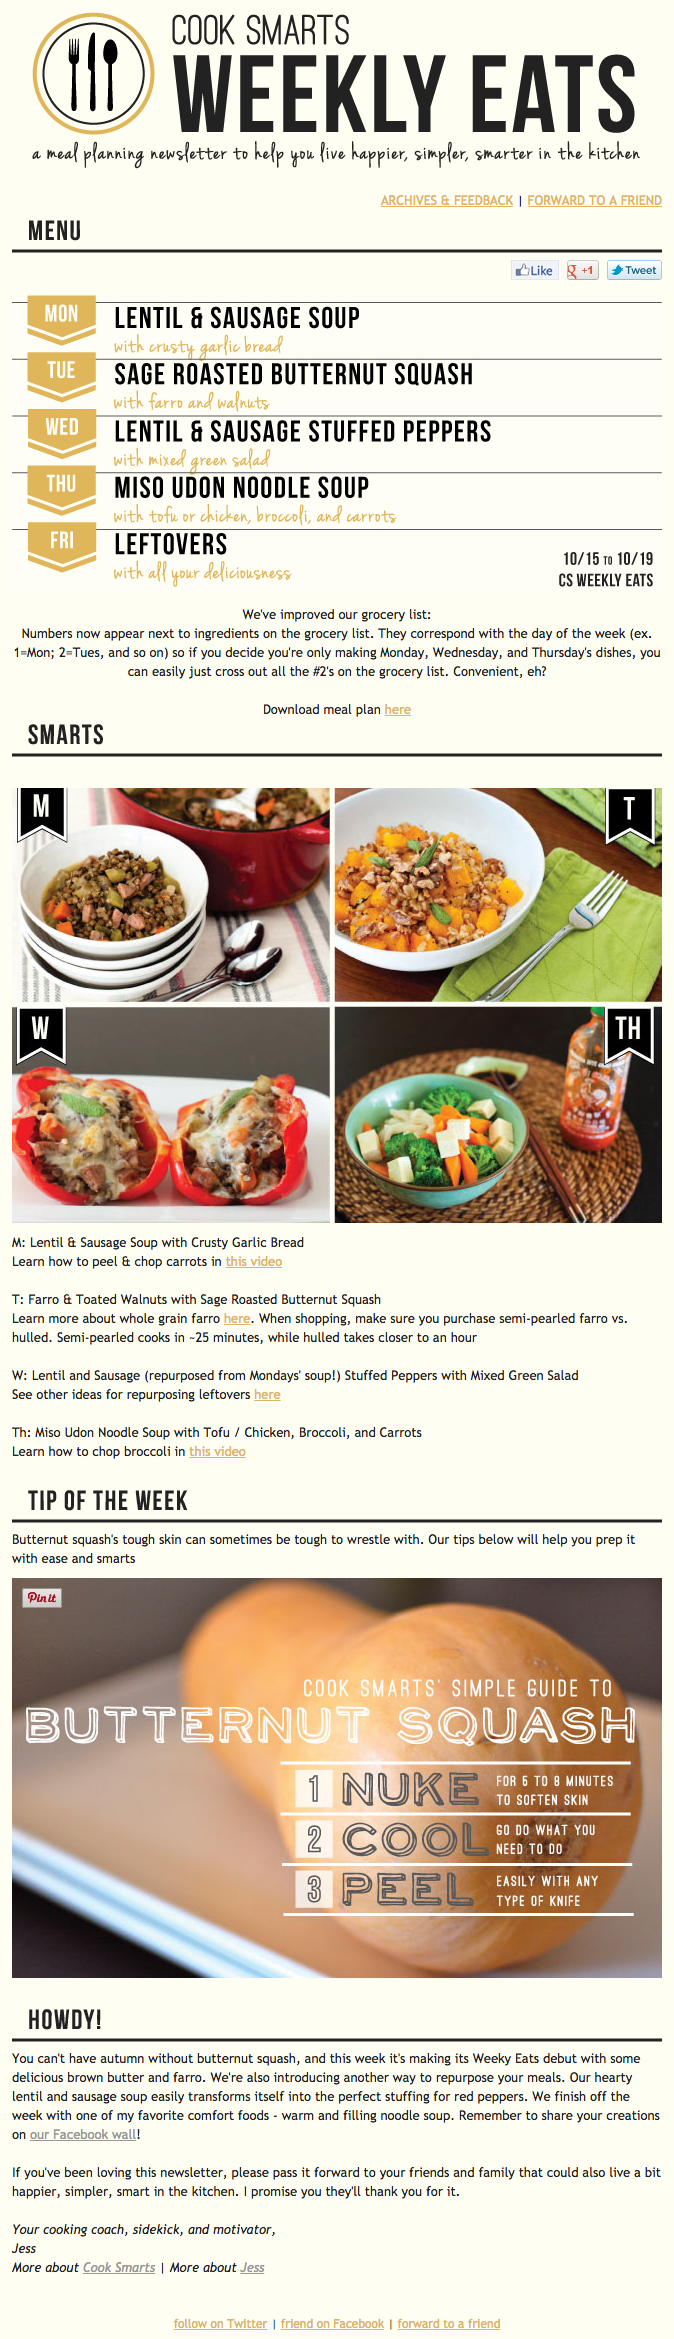 Email marketing campaign example by Cook Smarts on Weekly Eats